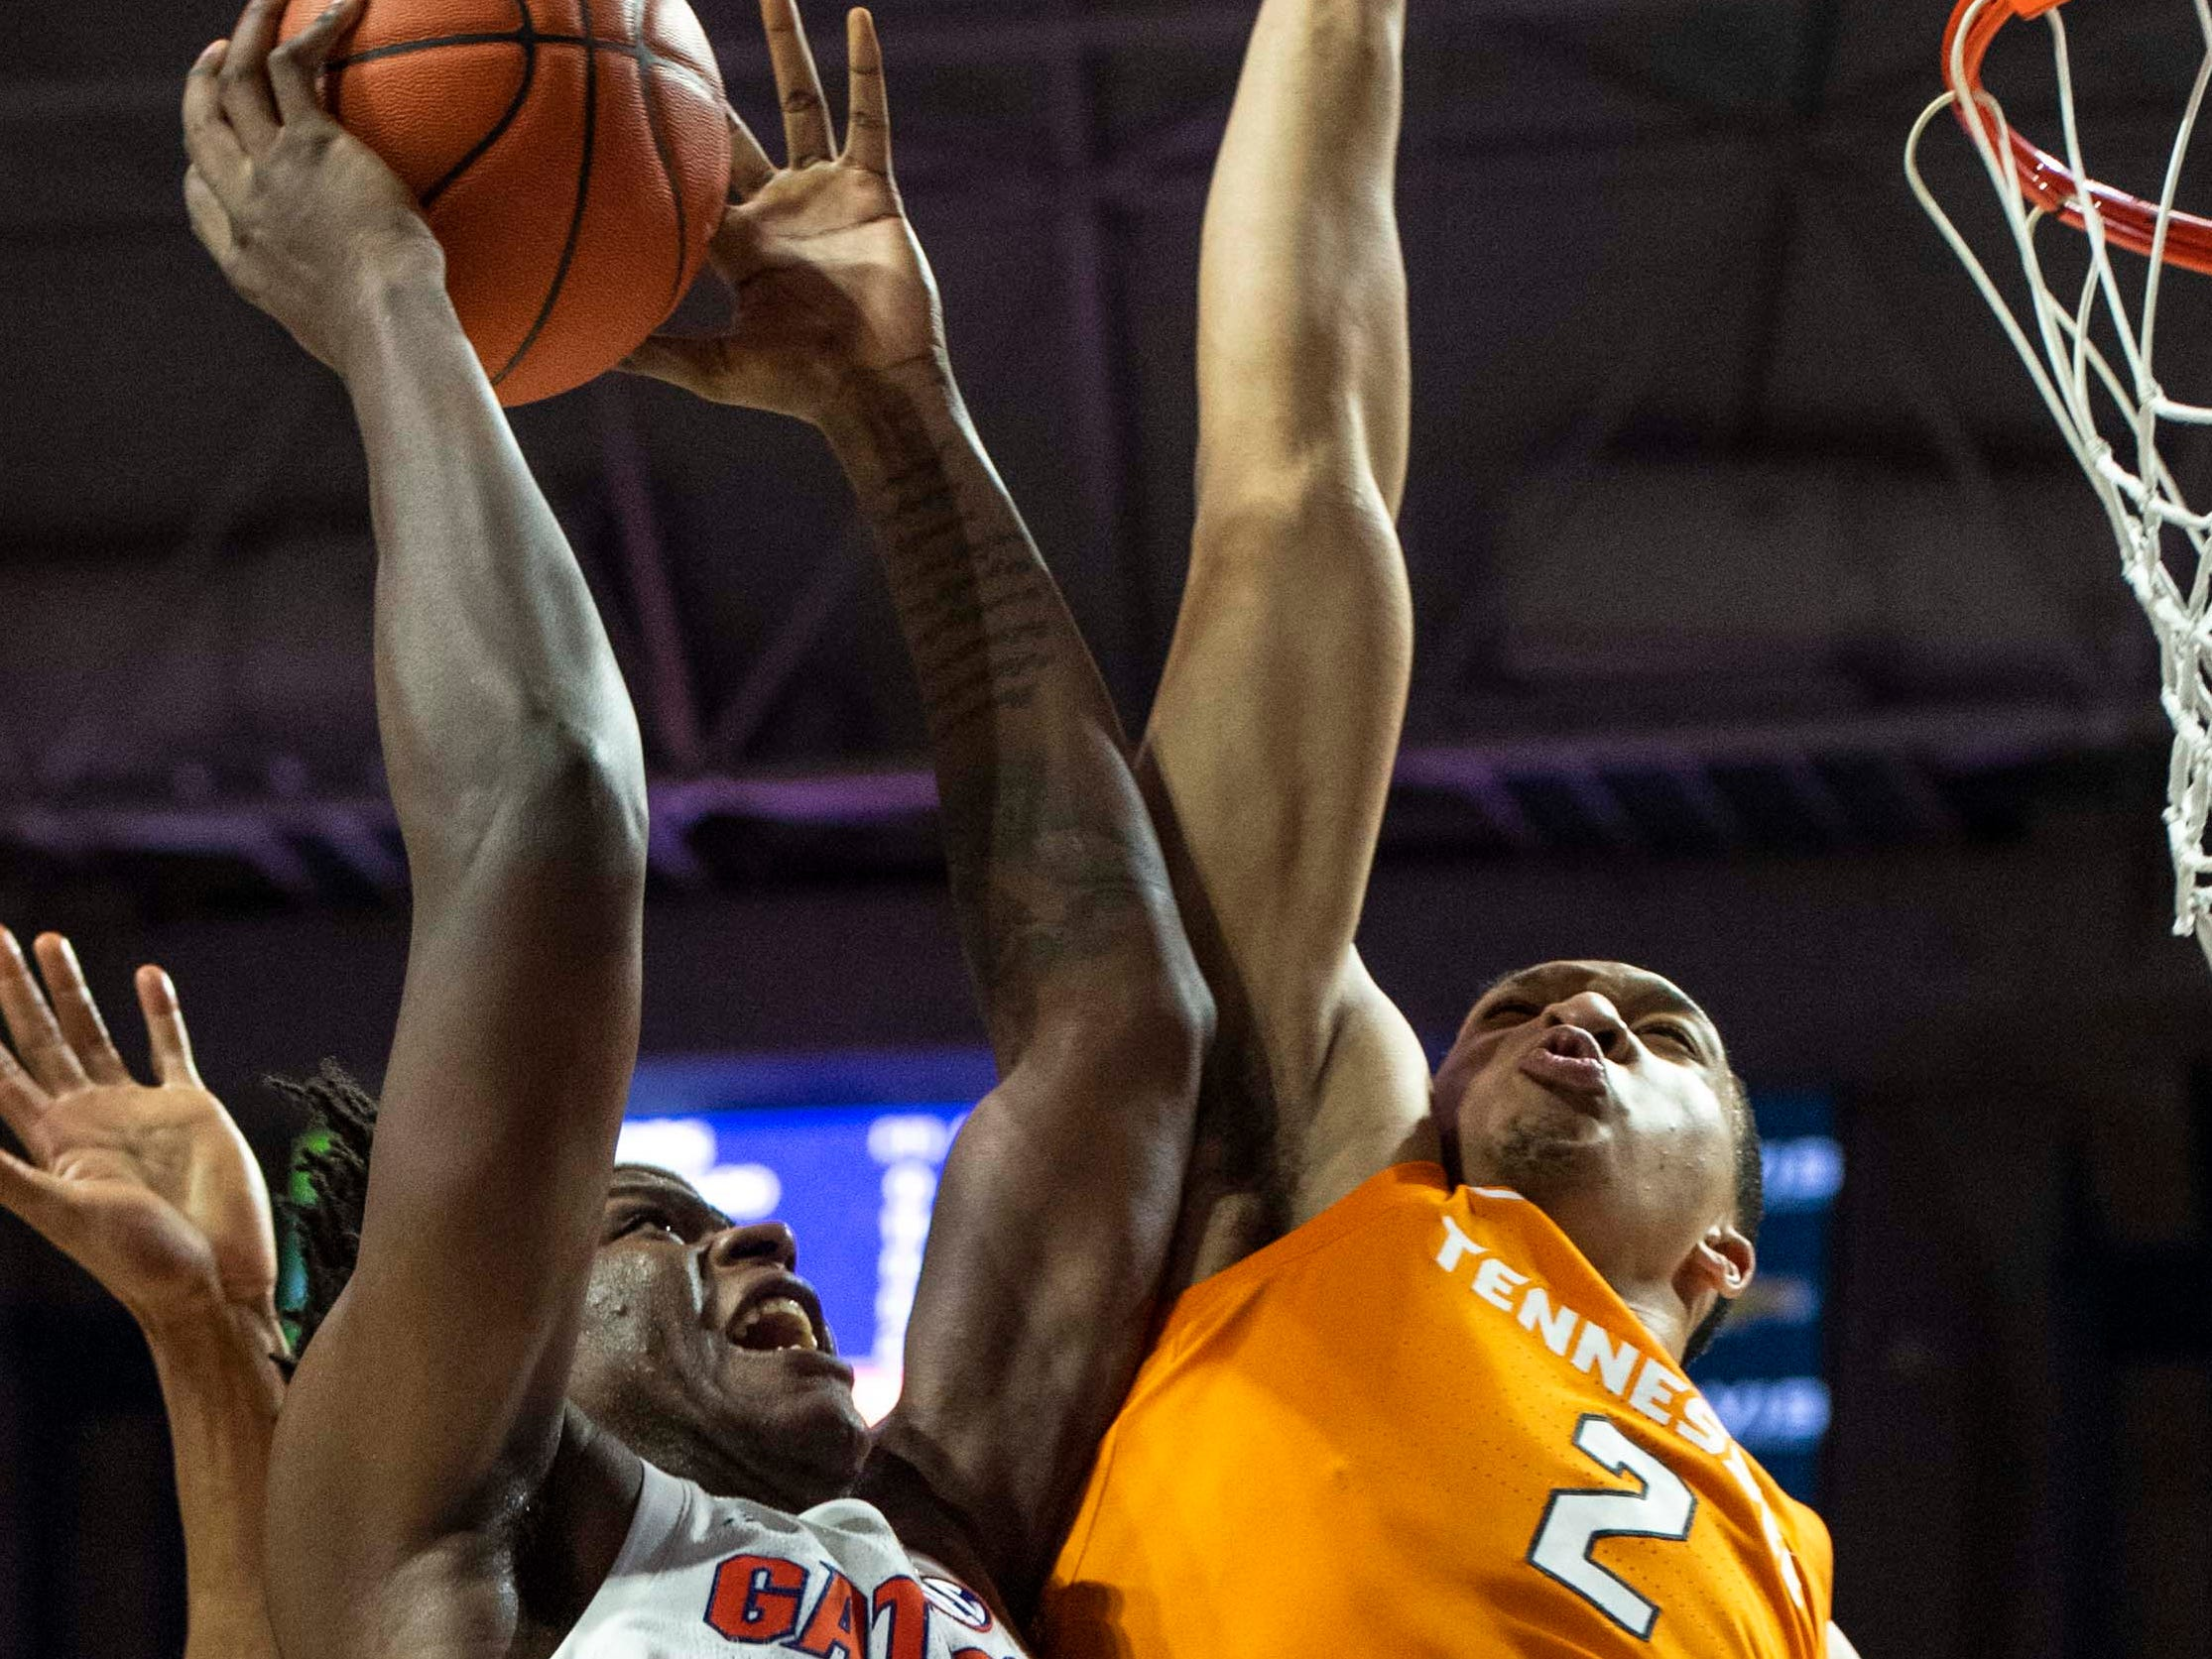 Florida Gators forward Dontay Bassett (21) drives for the net as Tennessee Volunteers forward Grant Williams (2) defends on Jan. 12, 2019.